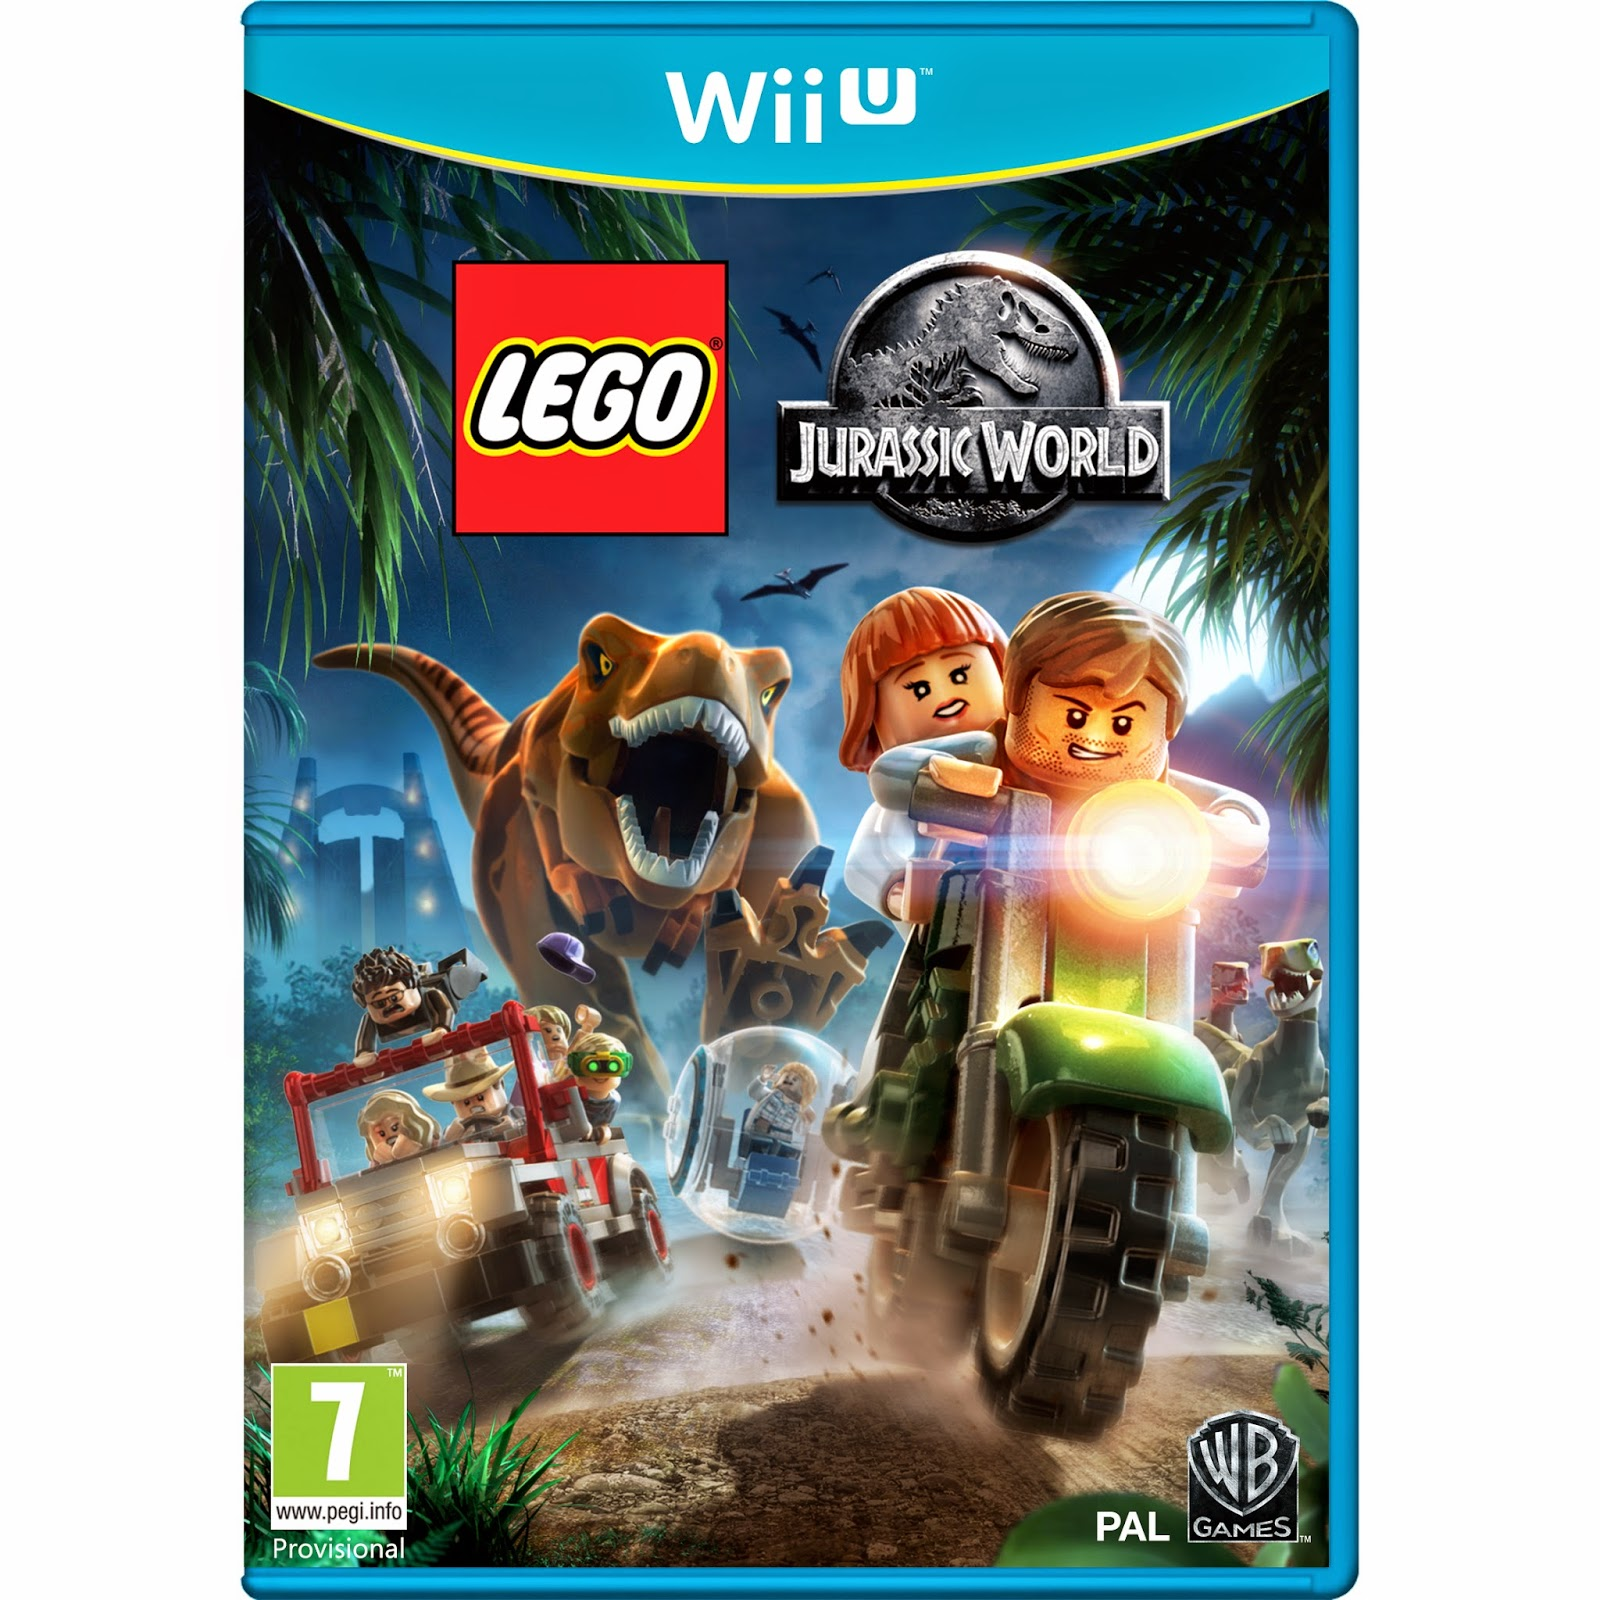 jurassic world game wii u